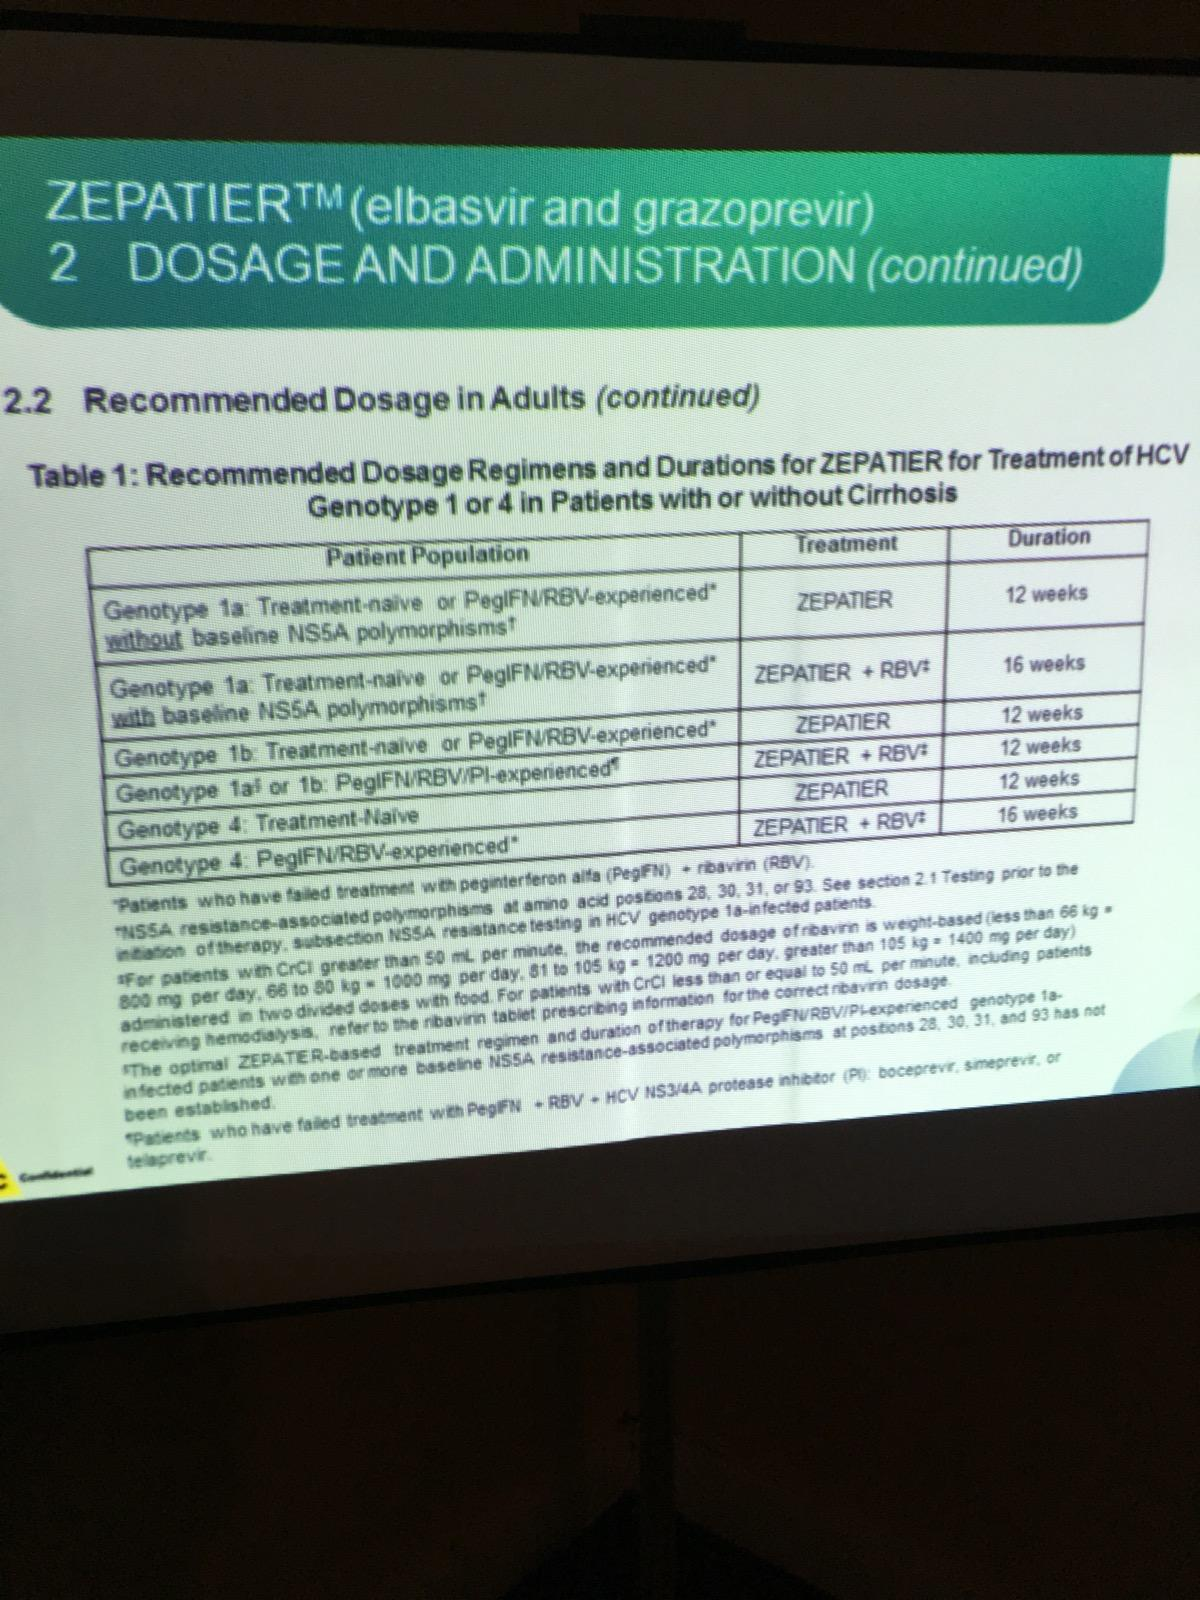 """Machine generated alternative text: ZEPATI ERTM (elbasvir and grazoprevir) 2 DOSAGEANDADMINISTRATION (continued) 2.2 Recommended Dosage in Adults (continued) Tabie 1 : Recommended Dosage Regimens and mrations for ZEPATIER for Treament of HCV GenoWpe 1 or 4 in Patients with or without Cirrhosis ulation atient IJ EPATIER baseåne NSSA a EATER basene NSSA ZEPATIER 1b Trexrne.nt•ow• or Pe IFNÅRBV.expenencedi ZEPATER RBv•: 1b Genotype ZEPATIER ZEPATER 12 16 weeks 12 weeks 12 weeks 12 weeks 16 weeks we peøter•ron a""""' (Peg""""') • 28. 30.3'..r93 see crCi 90 per the s • say. • per day. tos rood For crCl SO *tents 28. JCL 21. ed 93 NSY4A"""